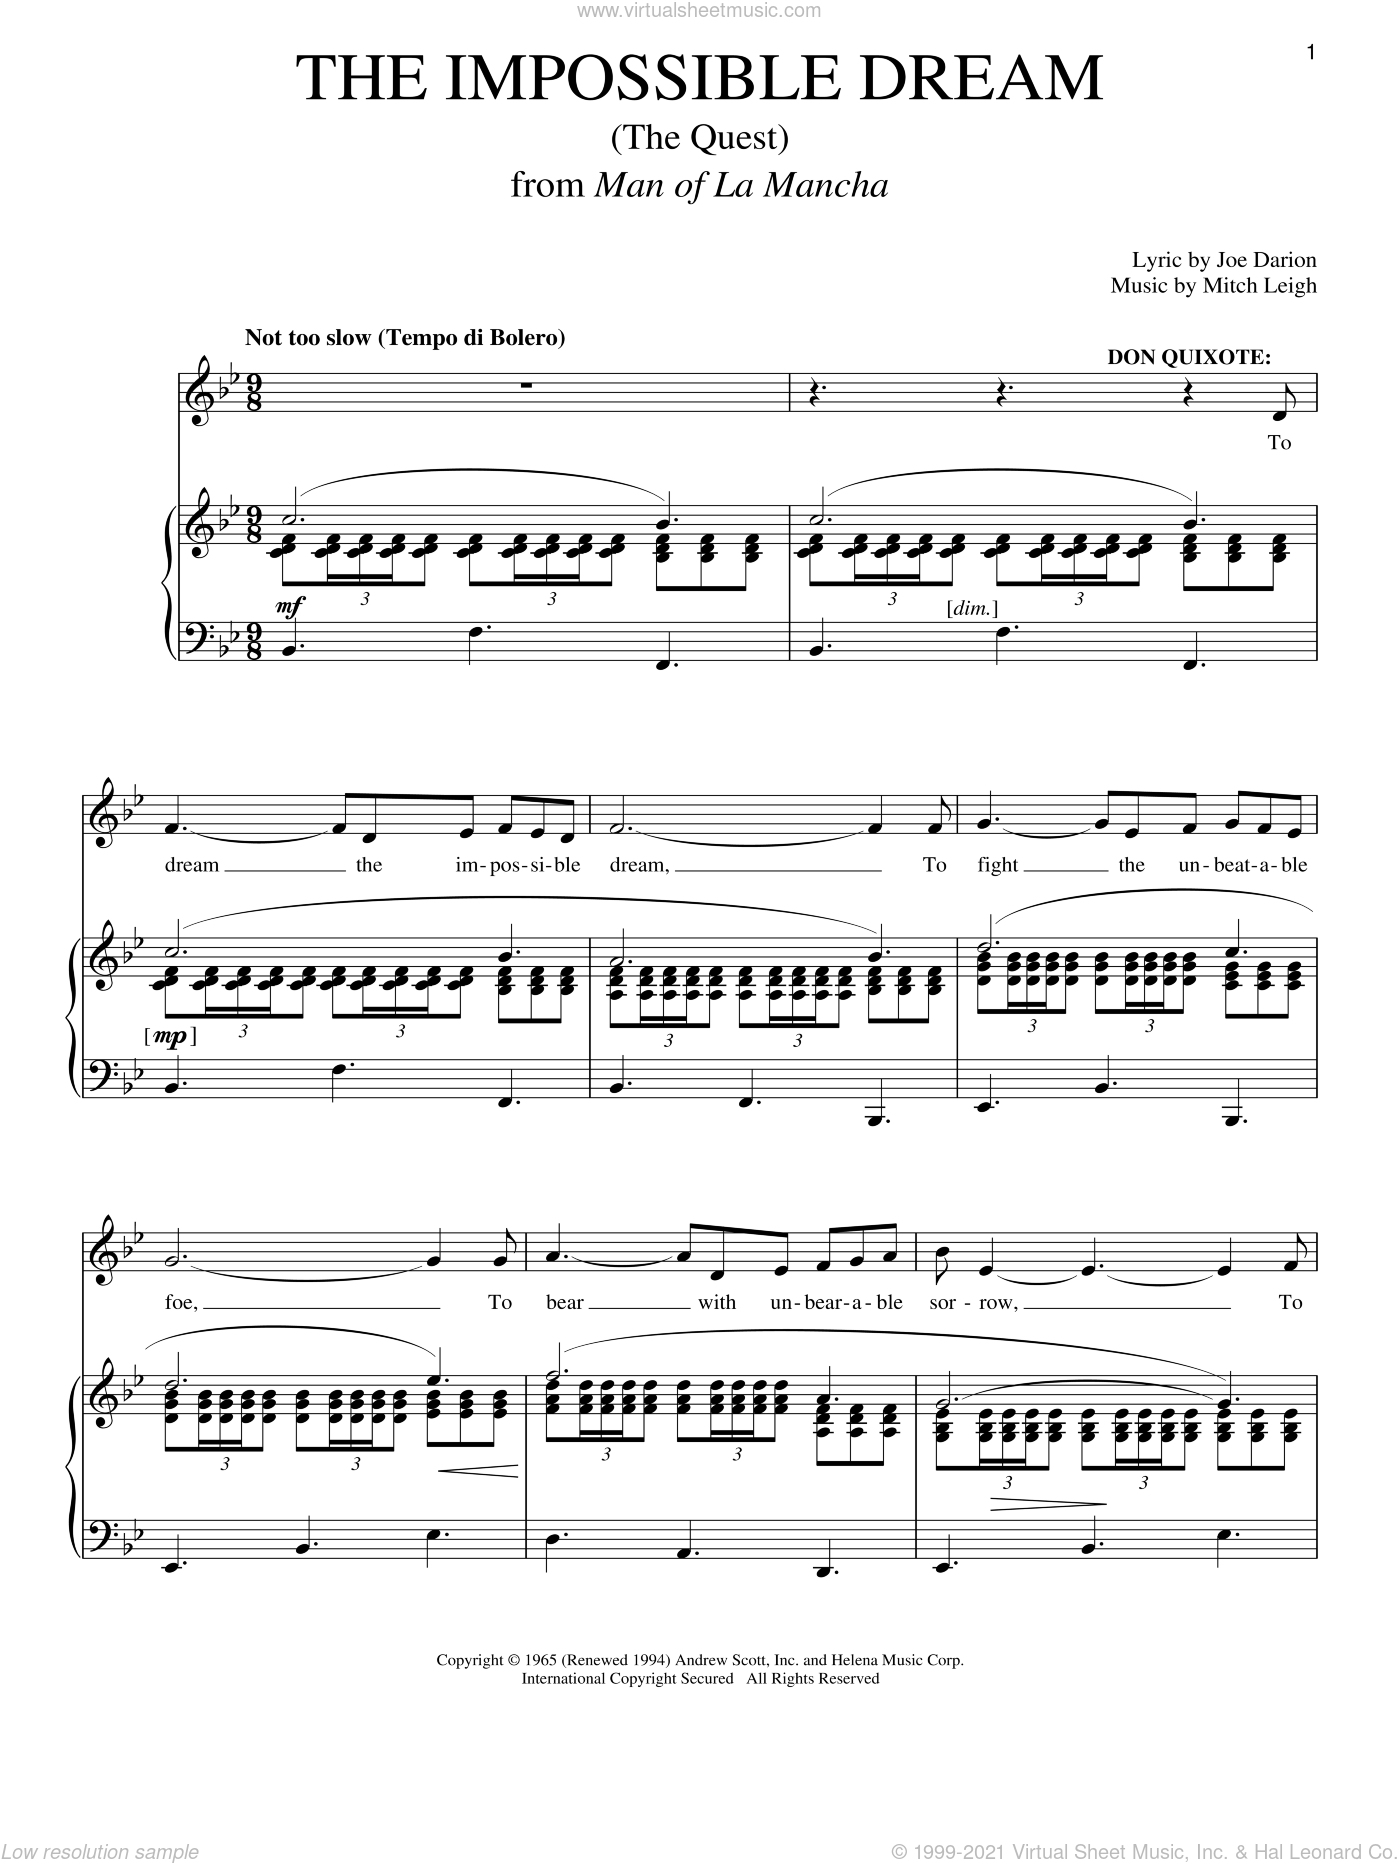 The Impossible Dream (The Quest) sheet music for voice and piano by Joe Darion, Man Of La Mancha (Musical), Richard Walters and Mitch Leigh, intermediate skill level